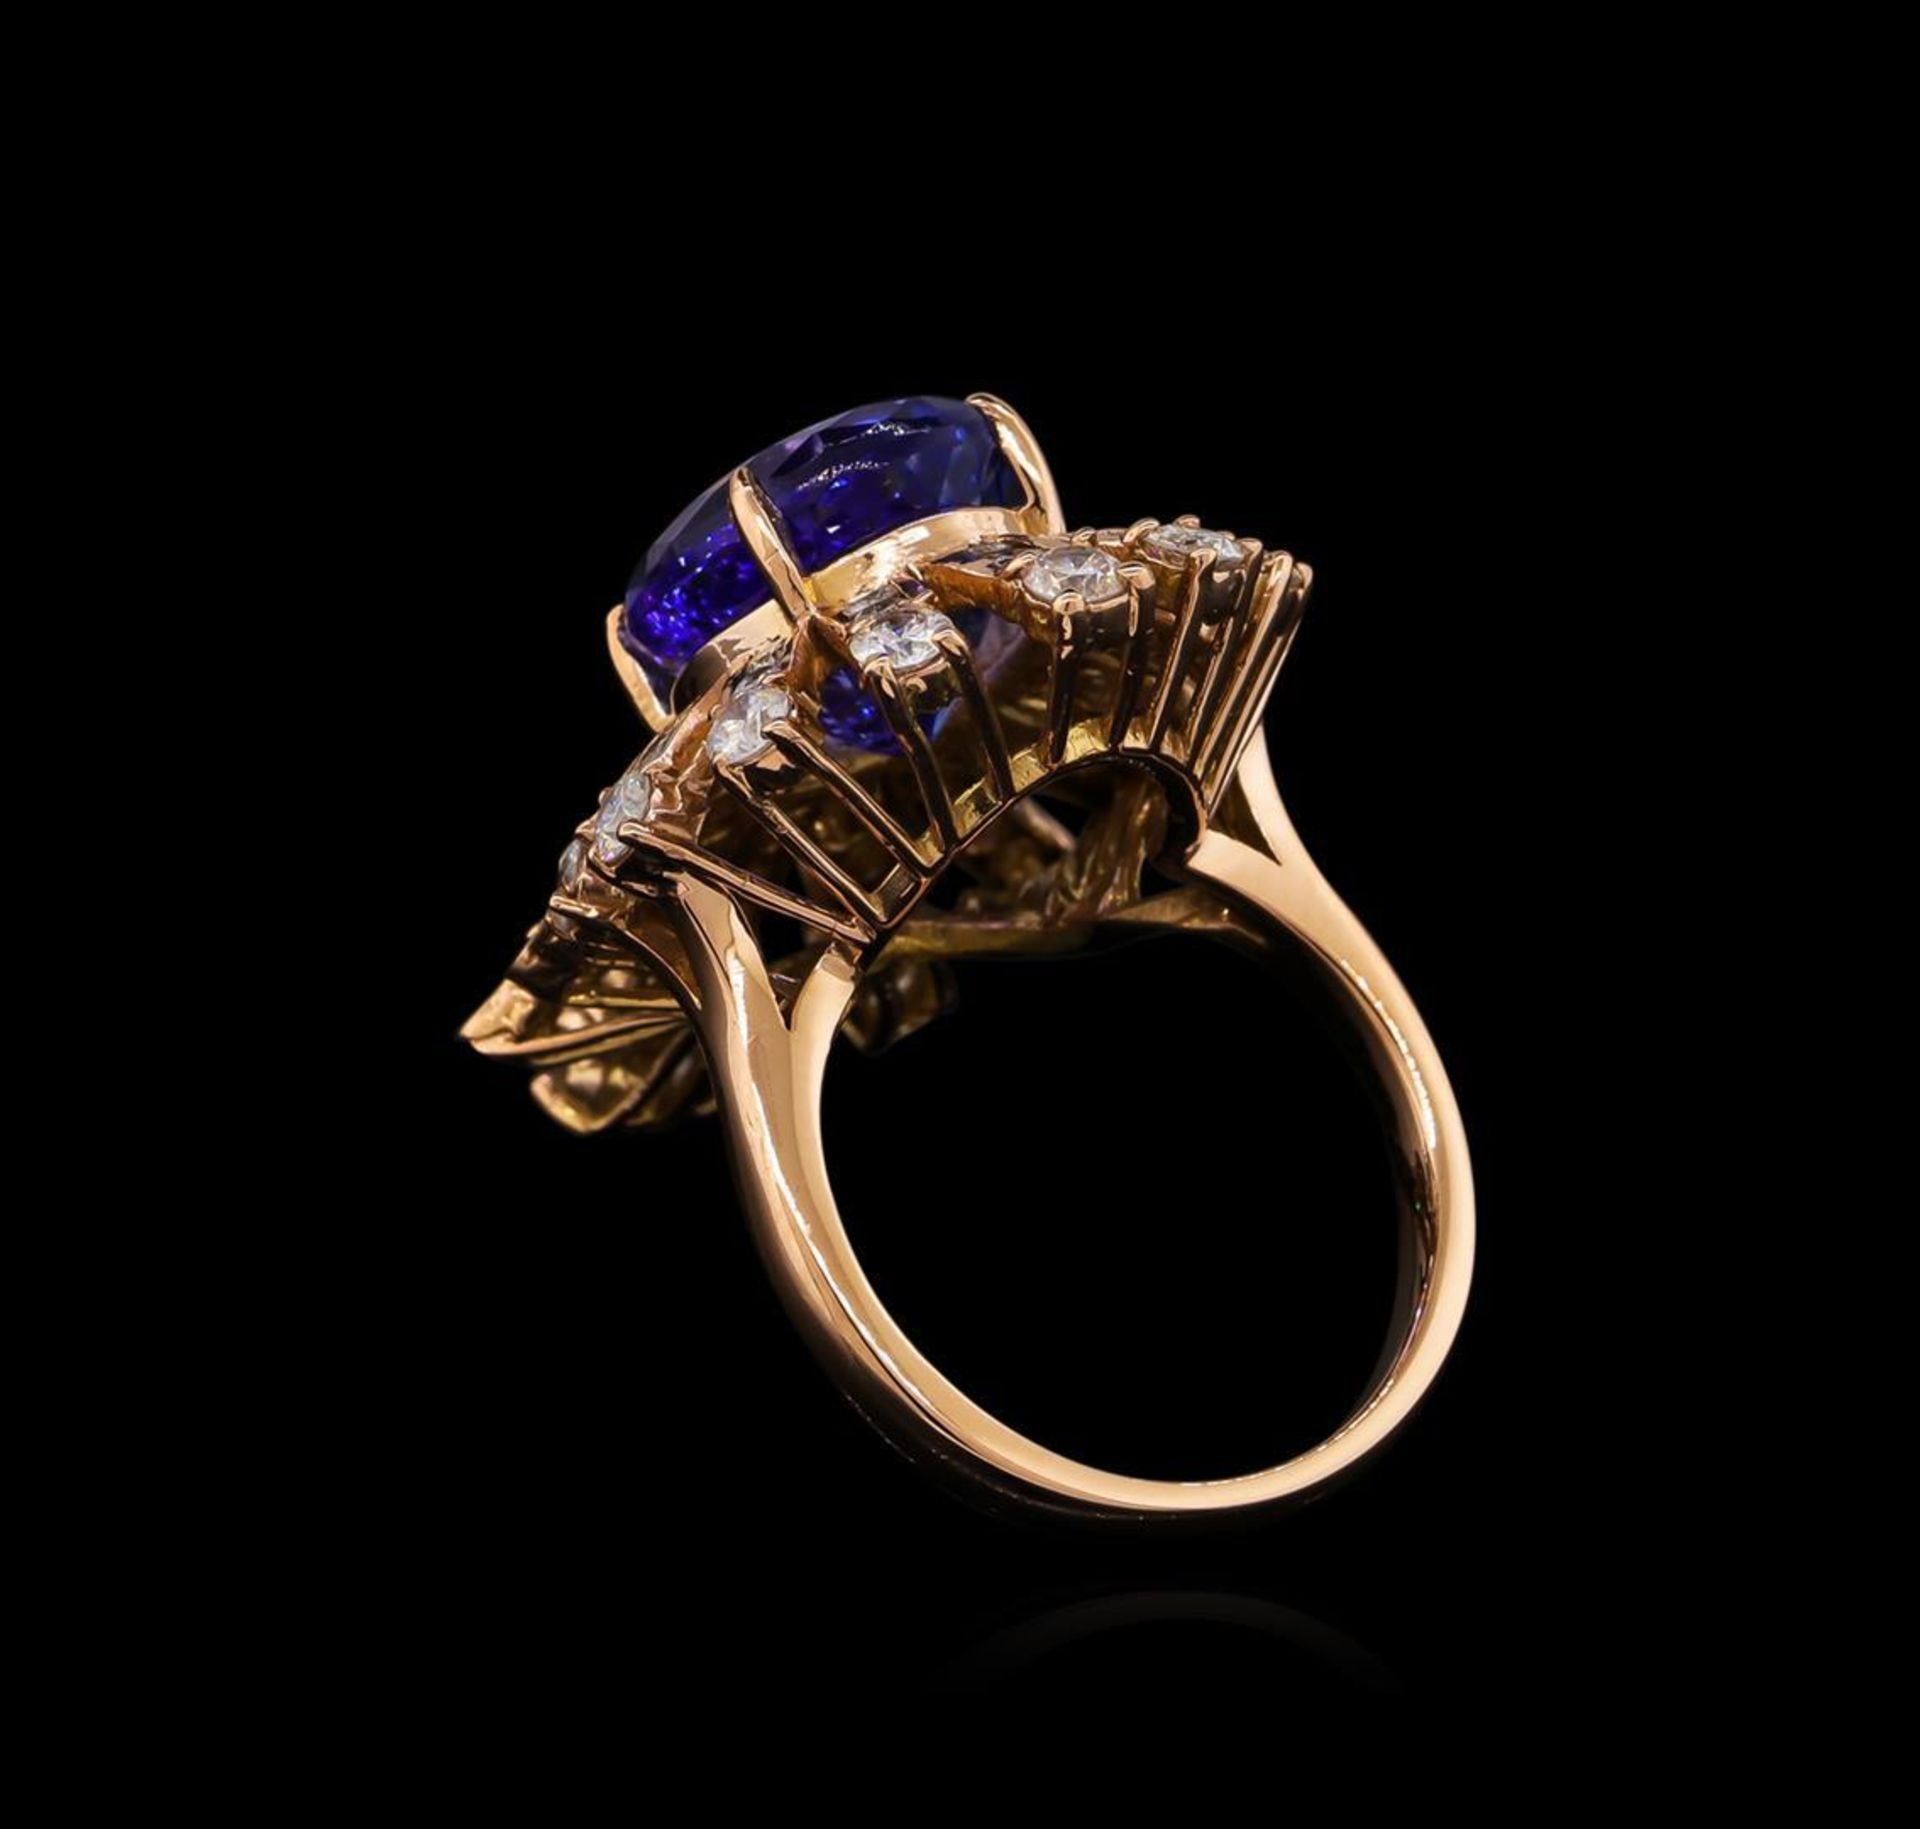 8.16 ctw Tanzanite and Diamond Ring - 14KT Rose Gold - Image 3 of 6